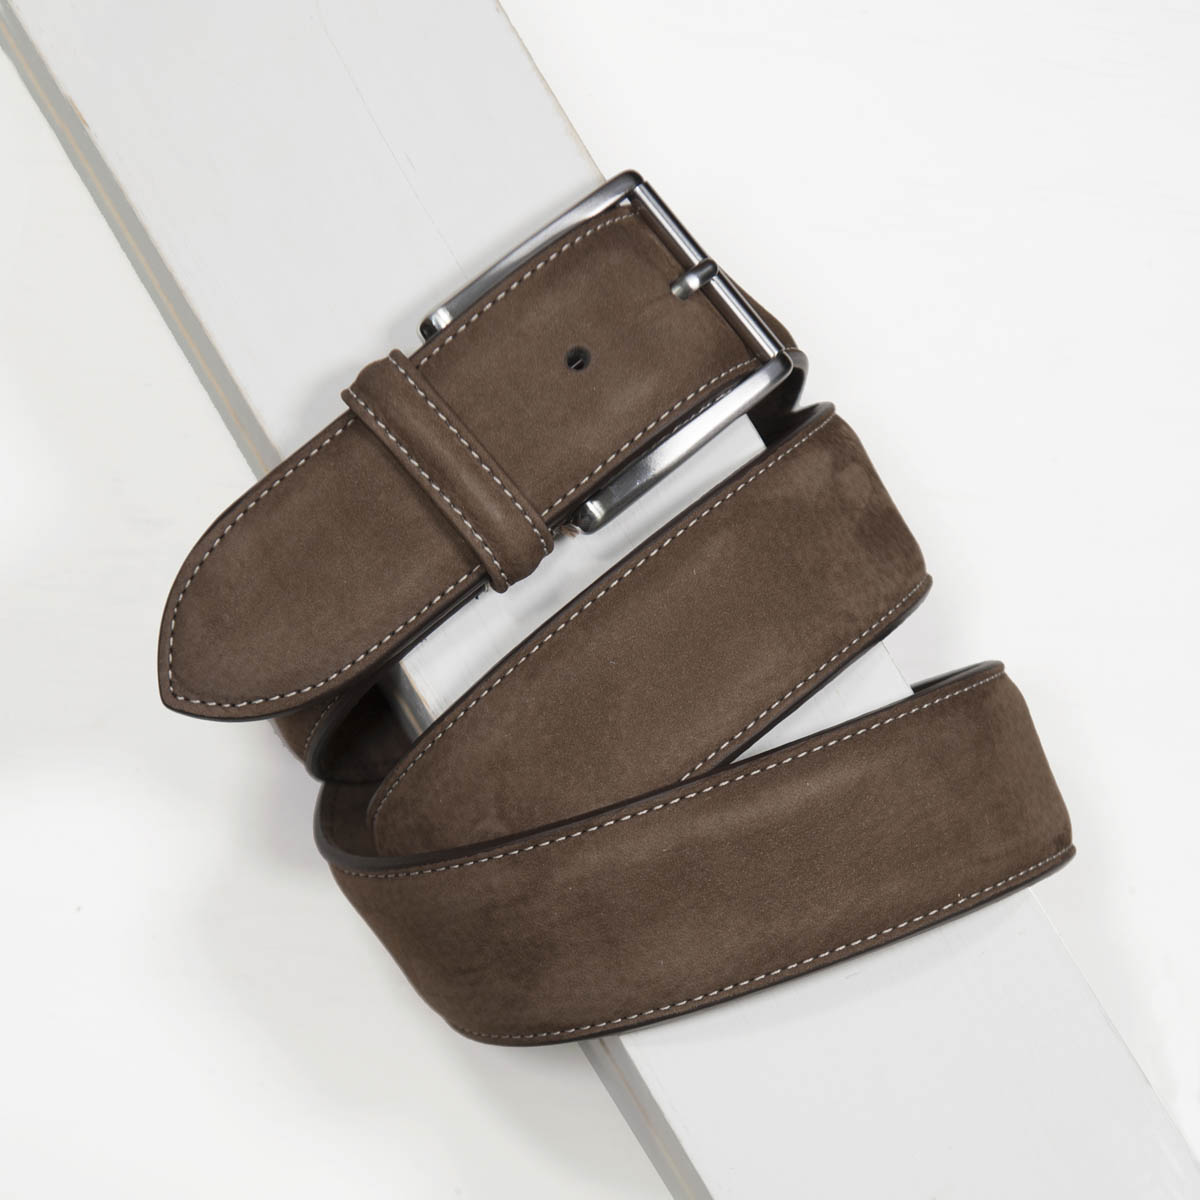 4,0 cm BROWN NUBUCK STITCHED BELT